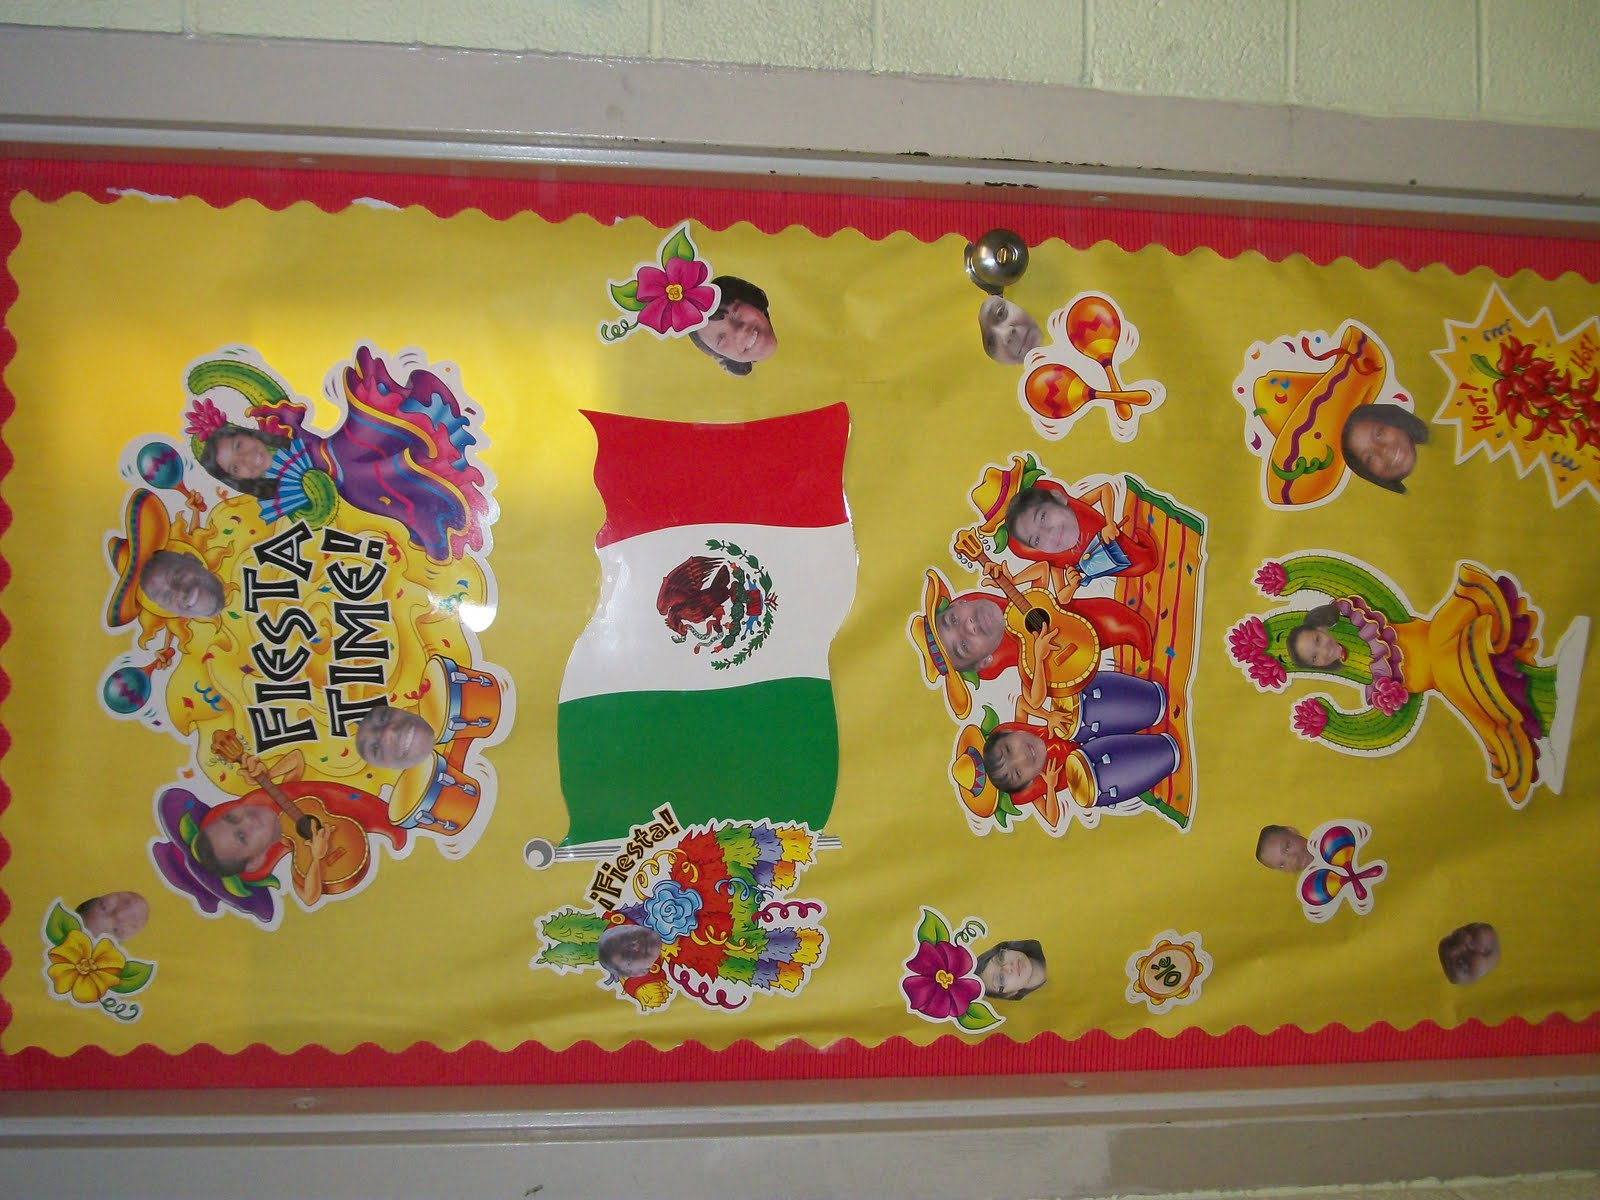 Ms. Cunningham's Class Blog: Cinco de mayo door decorations